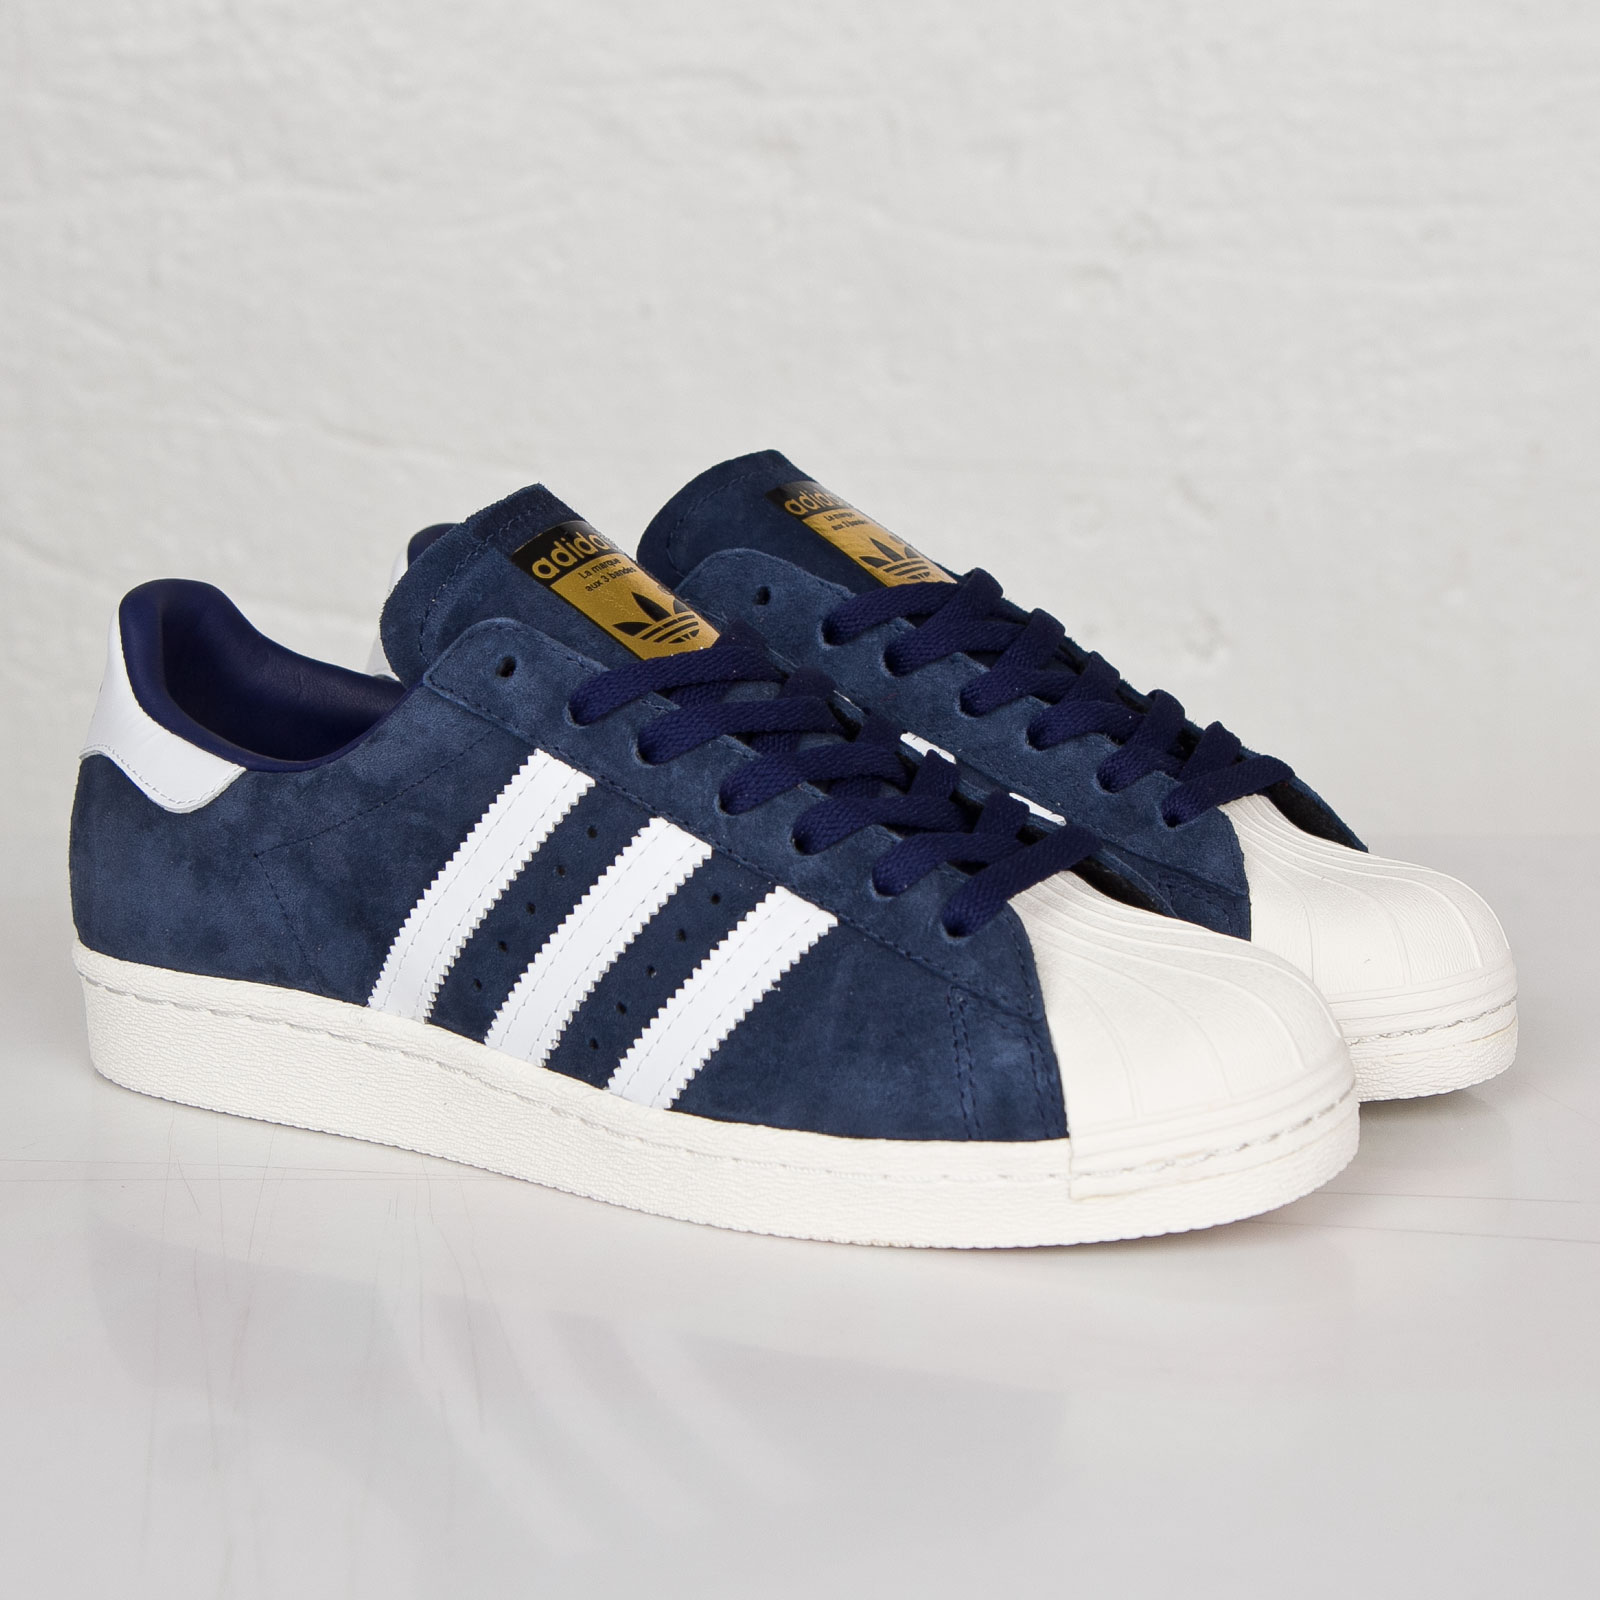 lowest price a9a0f c96bd adidas Superstar 80s Deluxe Suede - B35988 - Sneakersnstuff ...